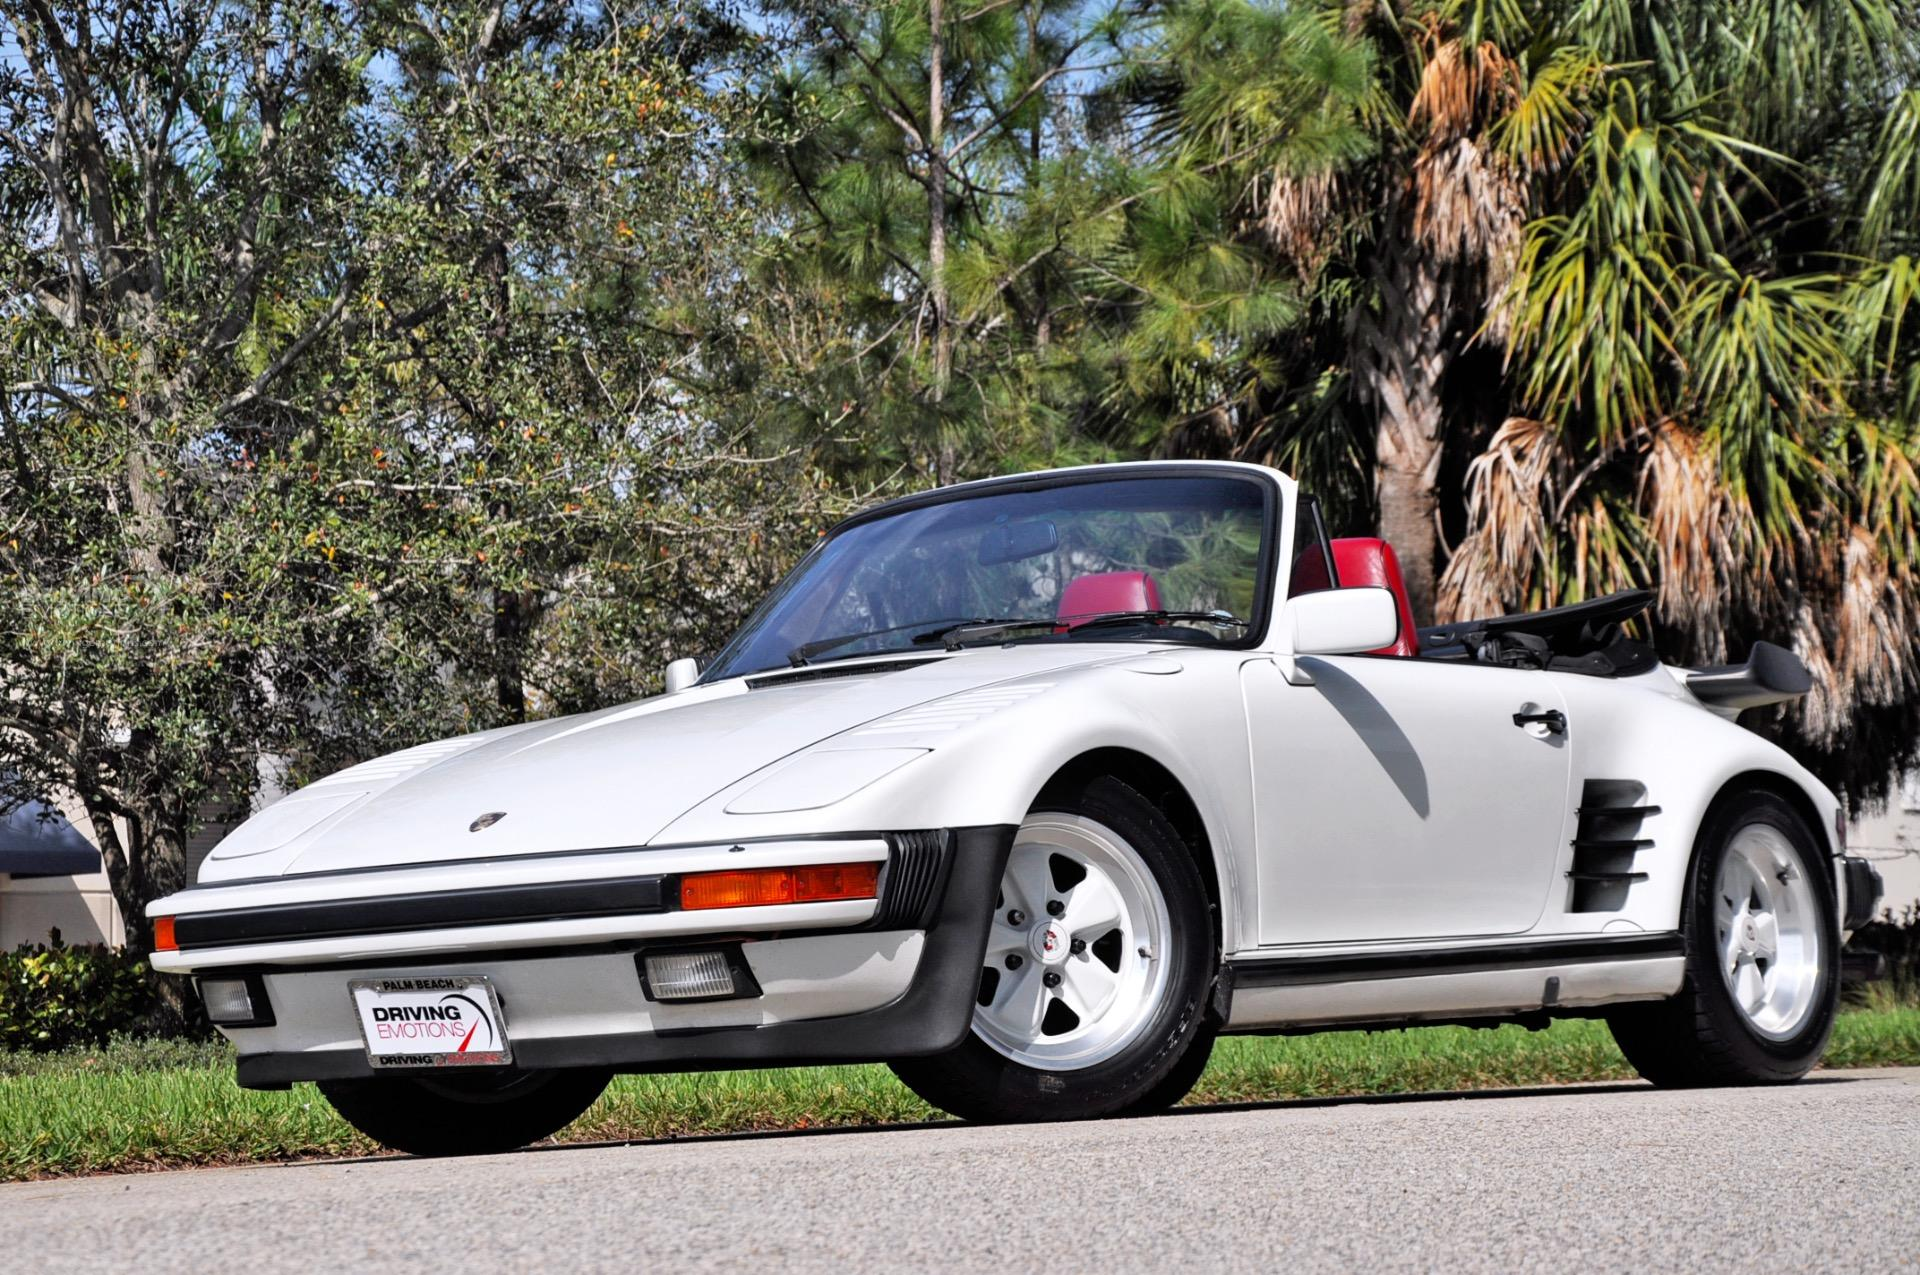 Used 1987 Porsche 911 930 Turbo Cabriolet Slant Nose Carrera Turbo Slant Nose | Lake Park, FL